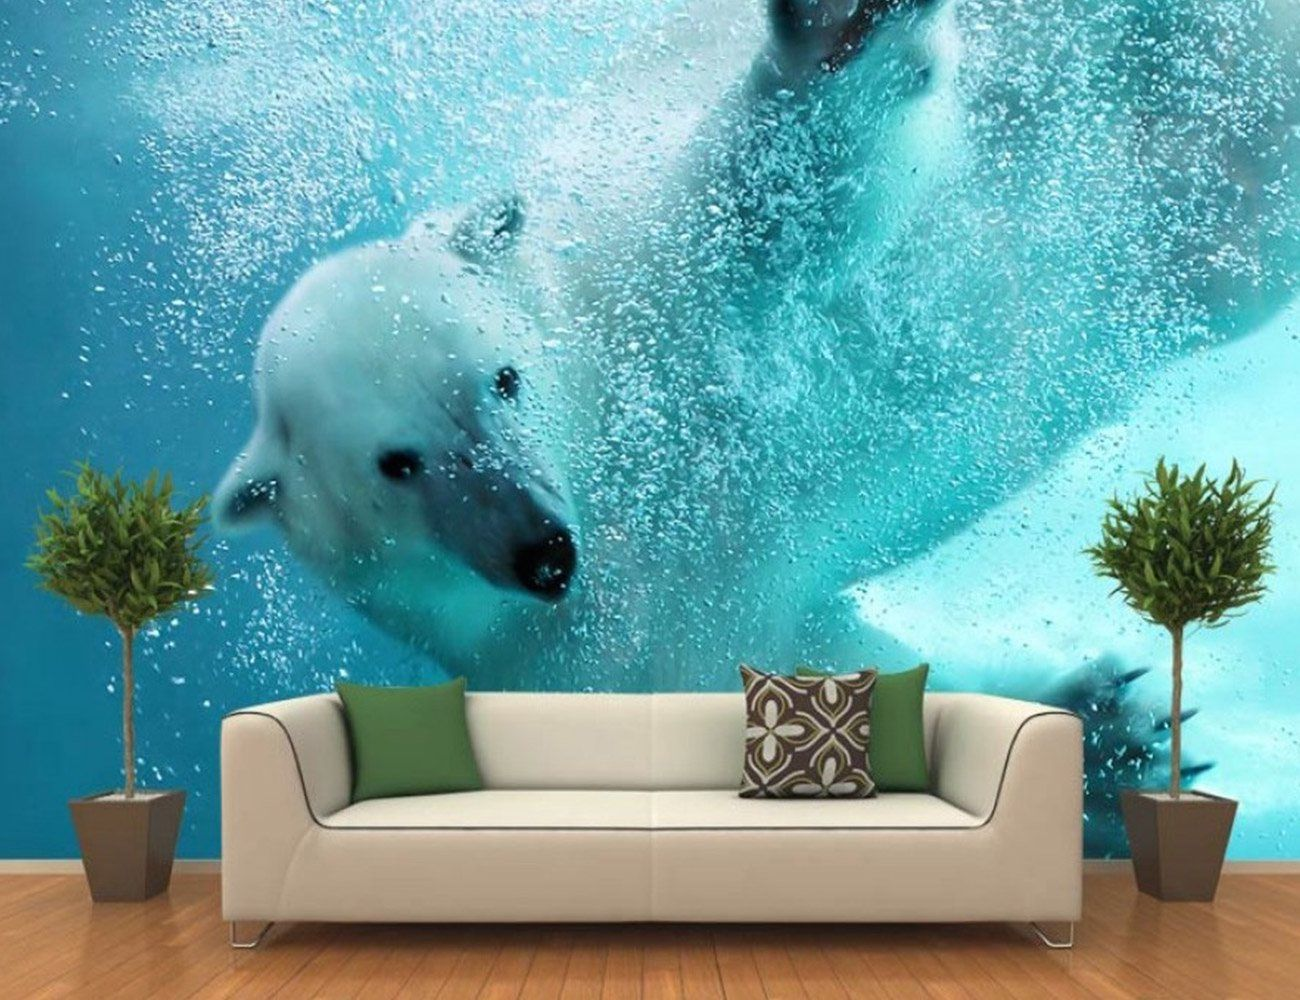 Polar bear underwater attack wall mural wall murals for Underwater mural ideas